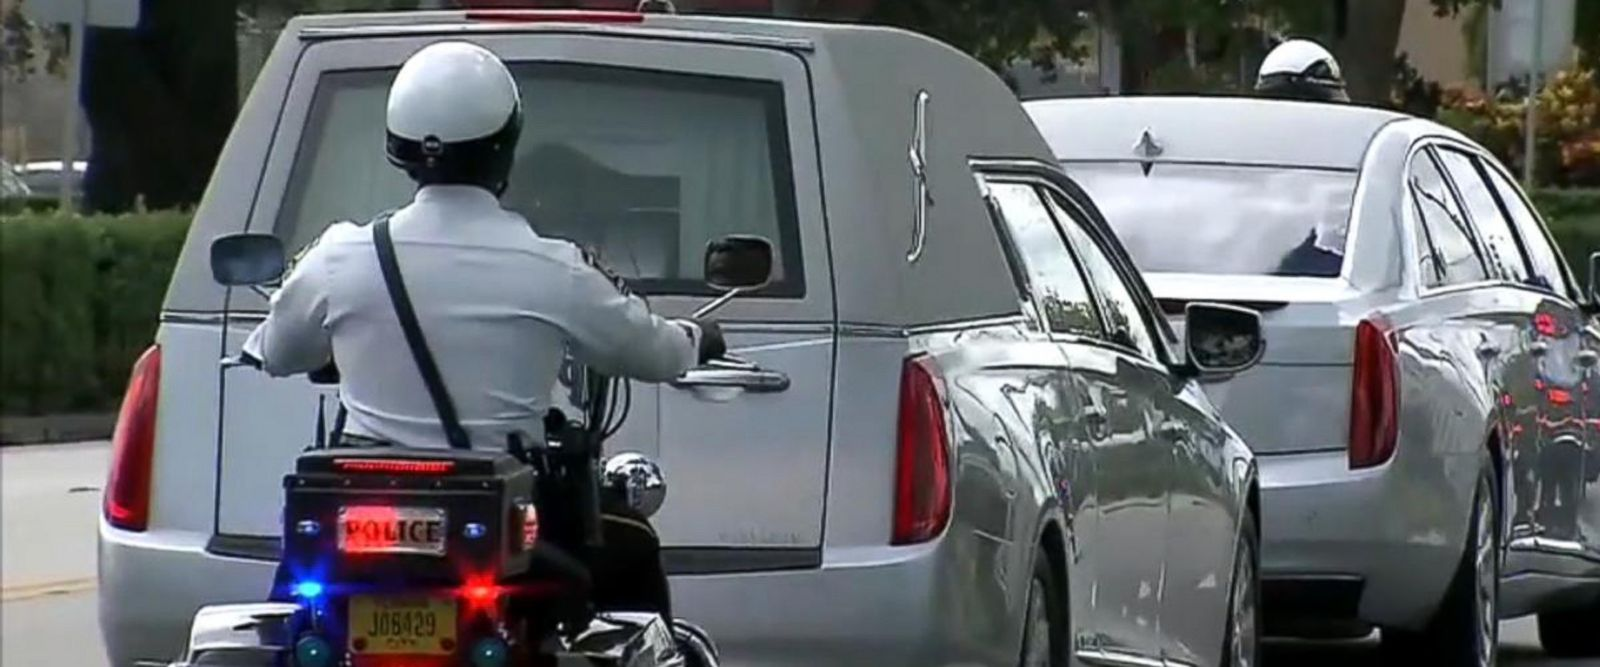 VIDEO: Fallen soldier's body transported to funeral home